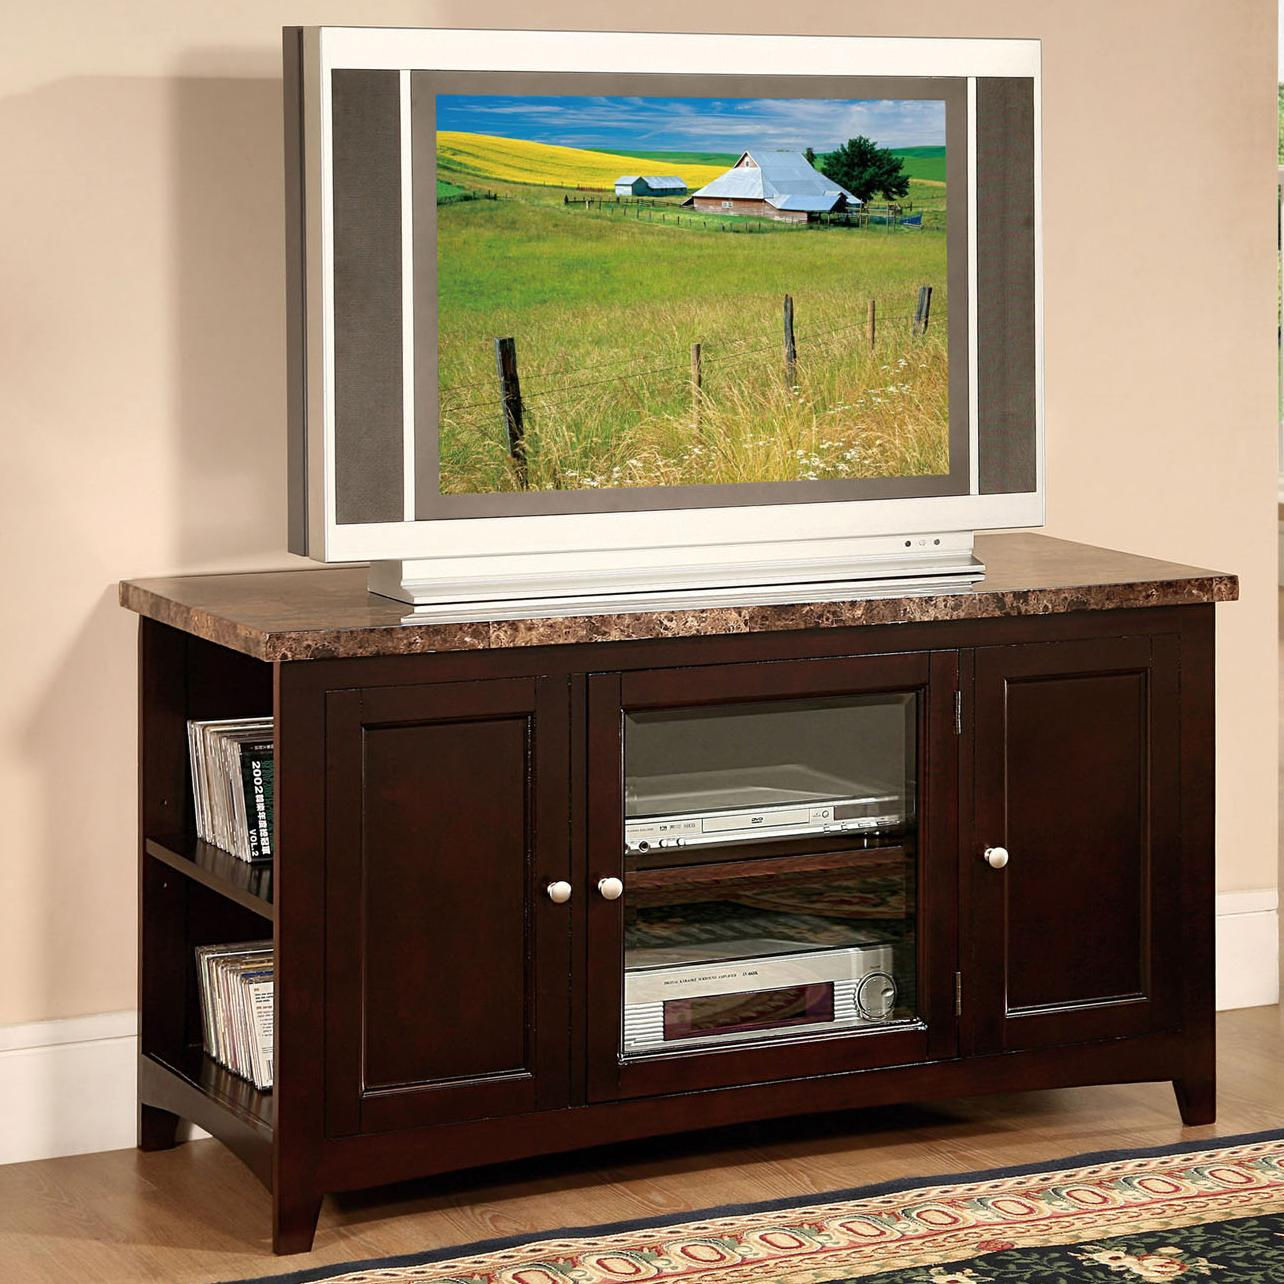 Acme Furniture Finely 91002 Tv Stand With Faux Marble Top And 3 Doors Del Sol Furniture Tv